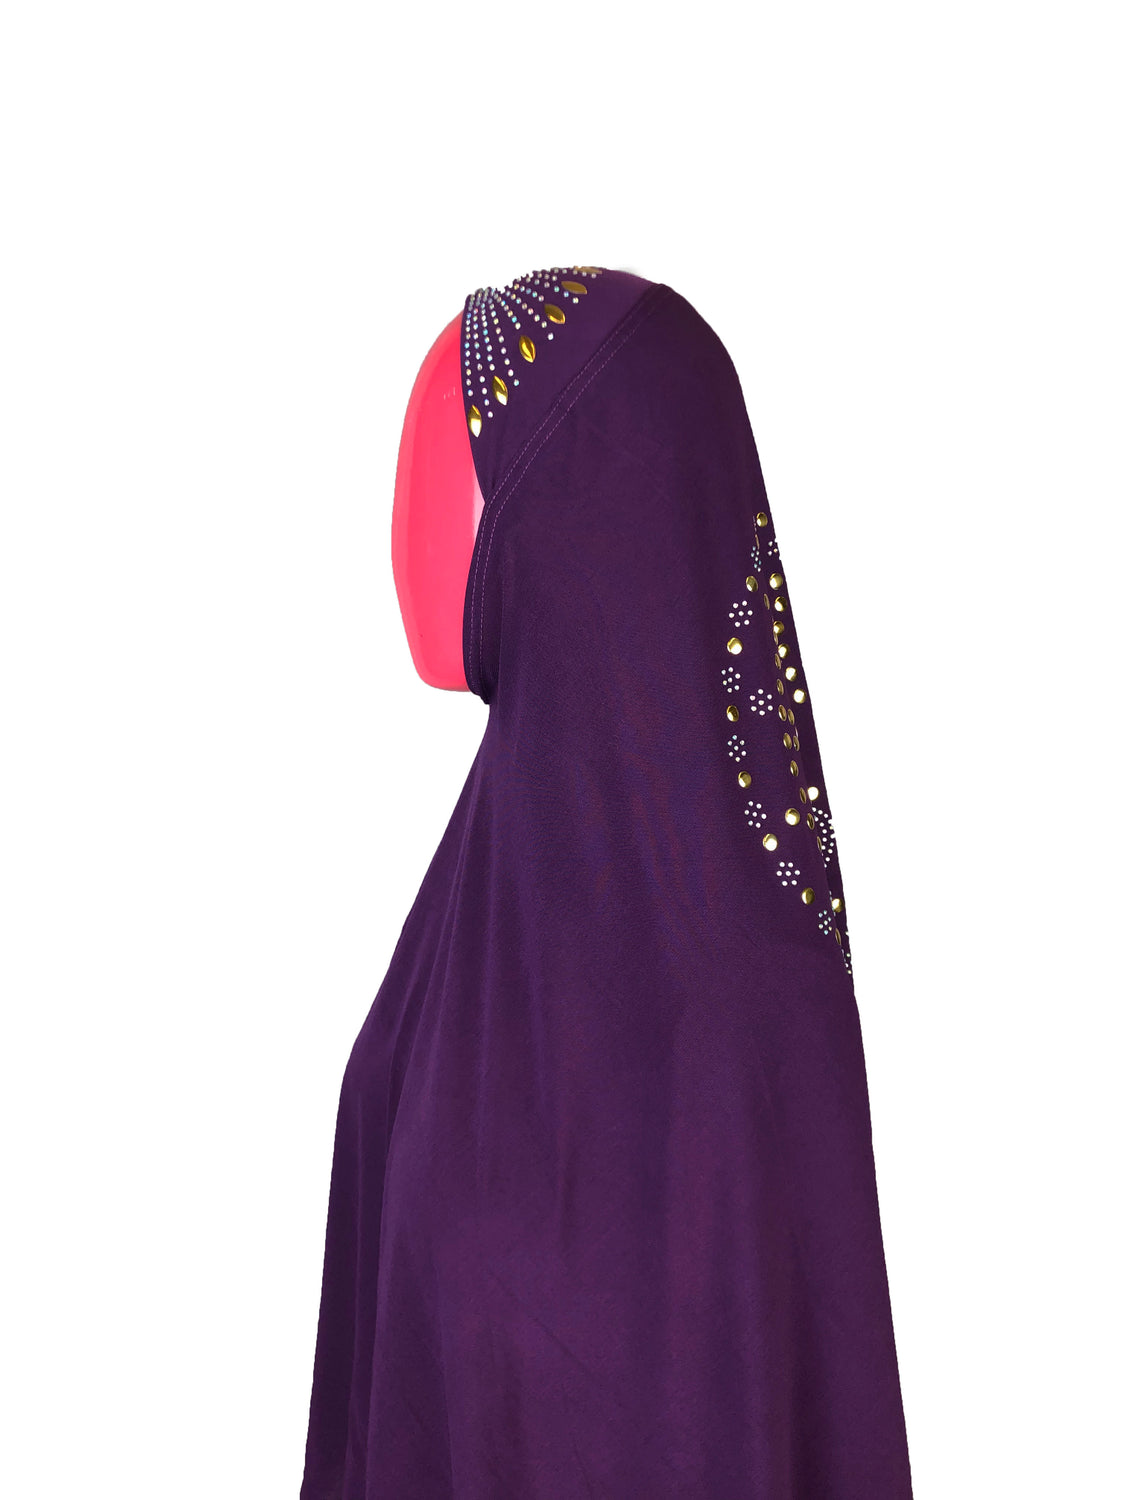 long purple one piece slip on hijab with jewels